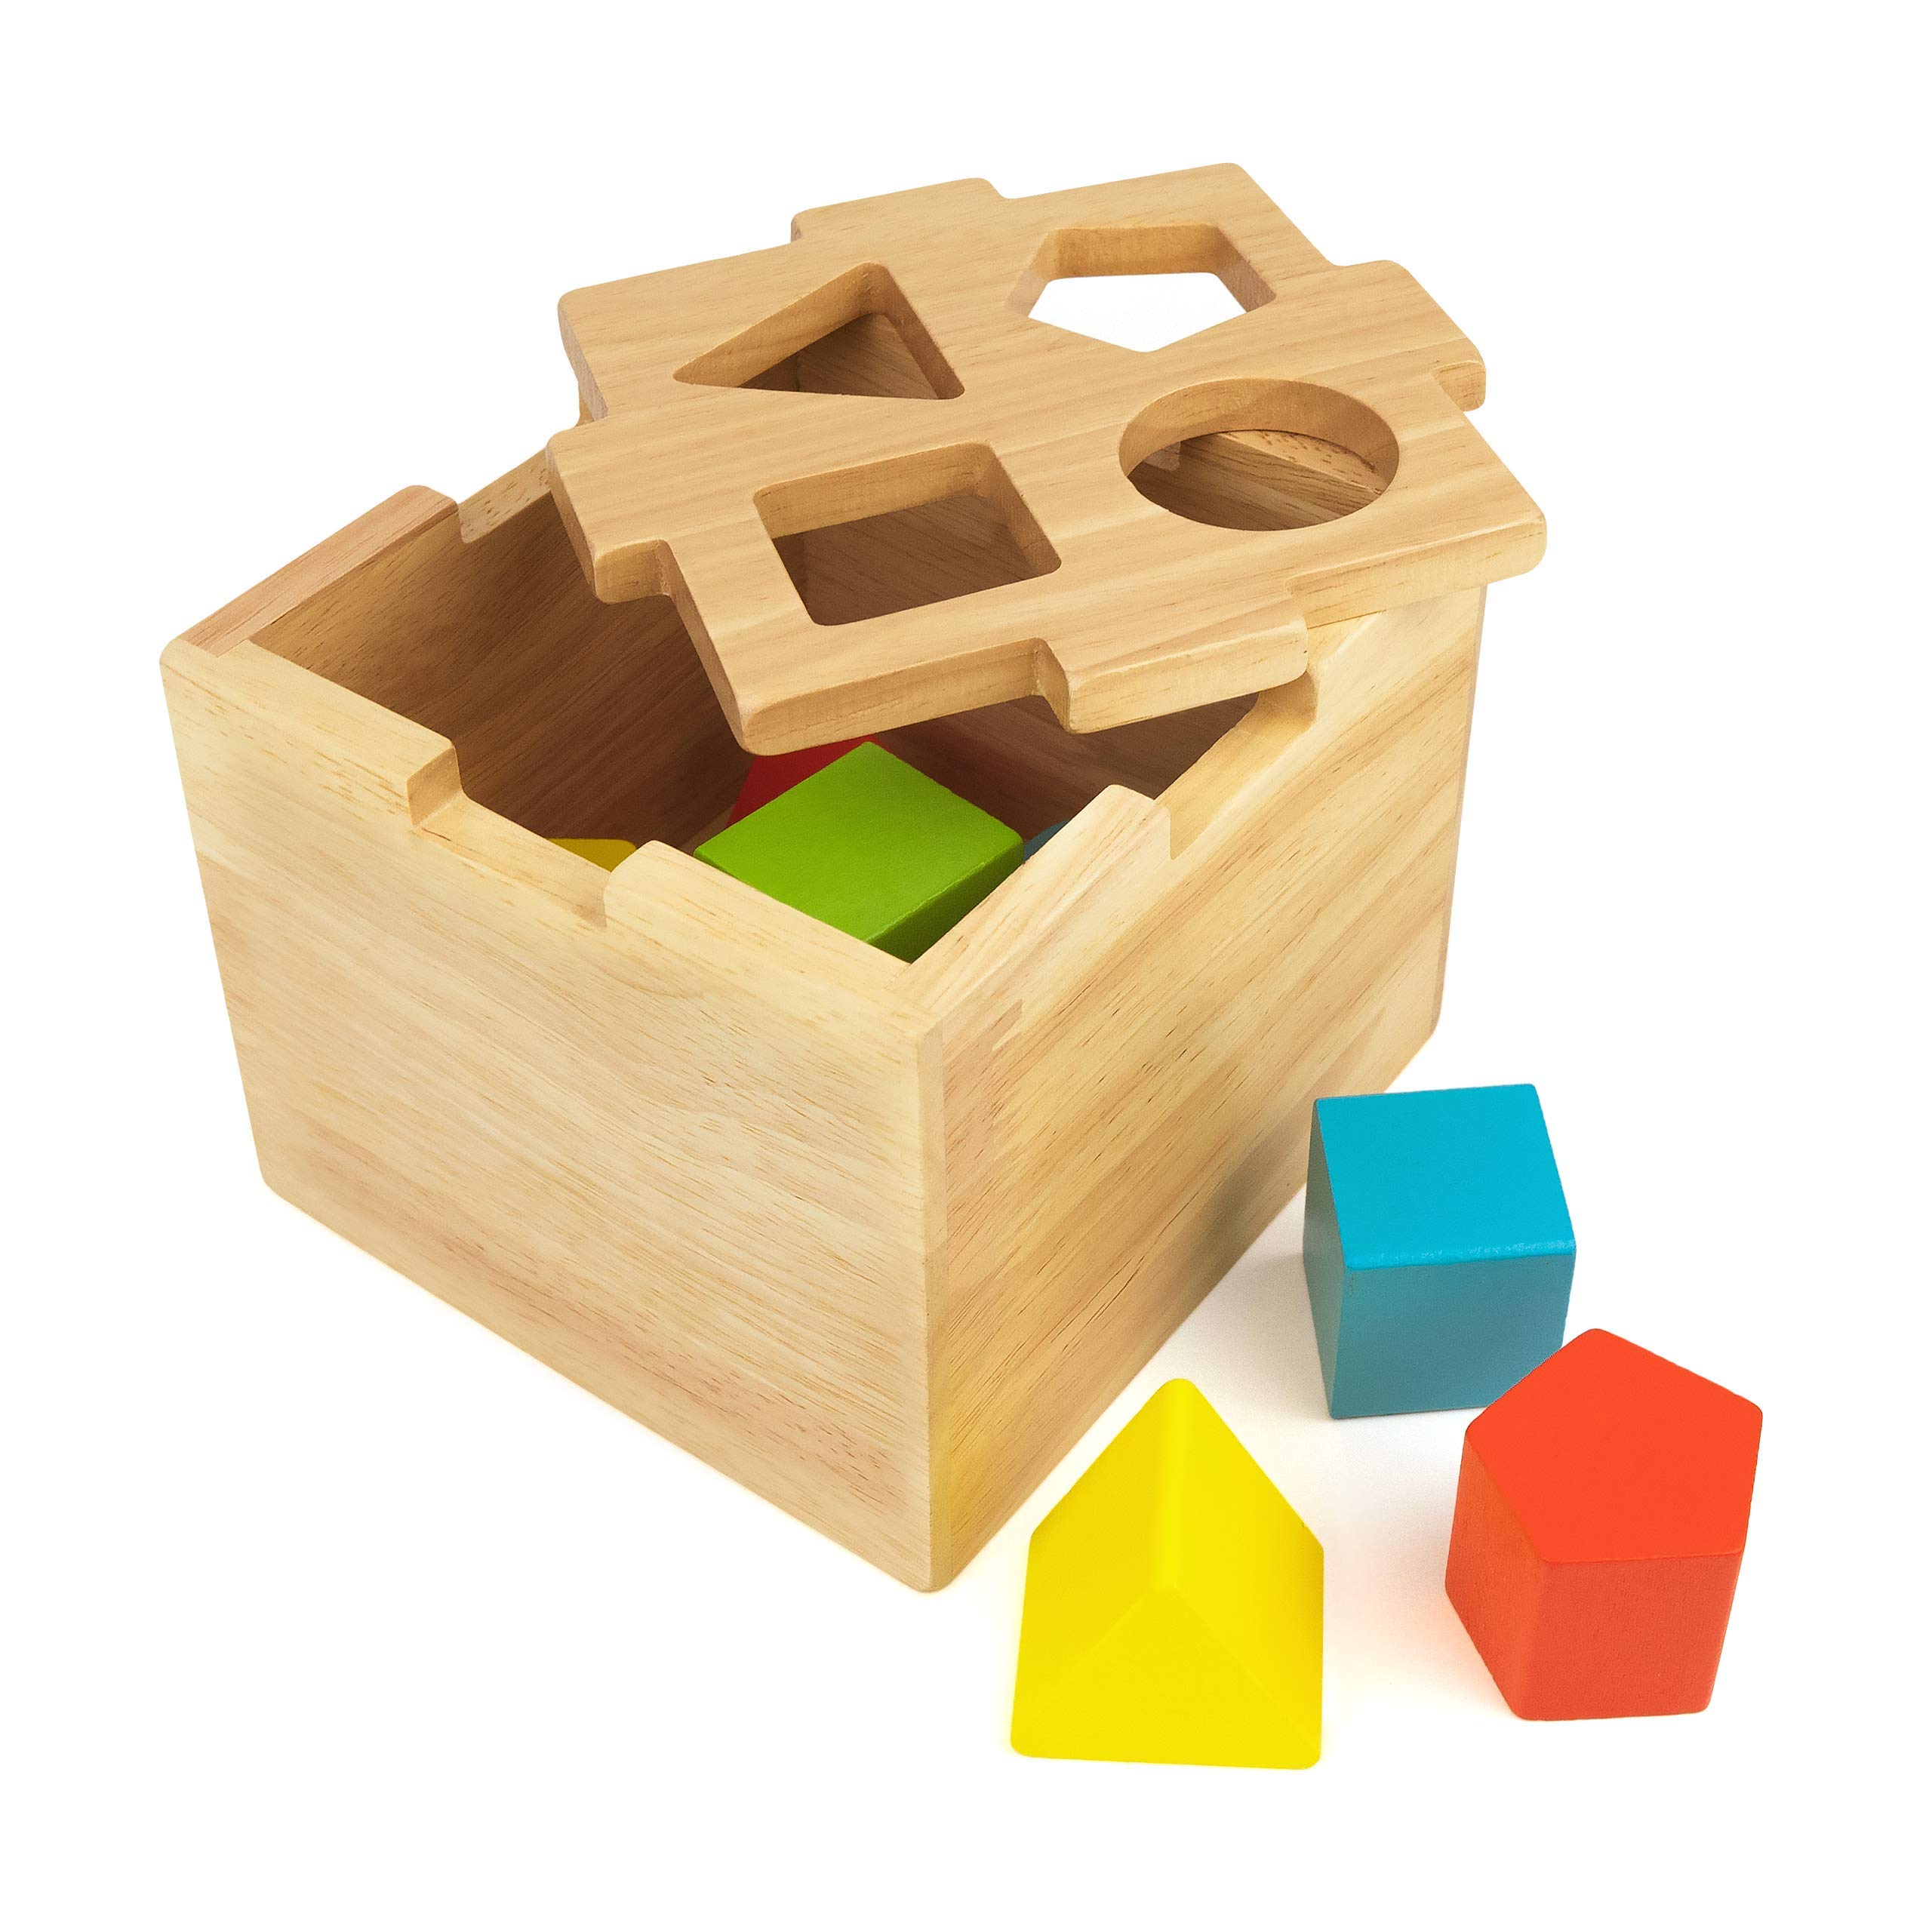 Bimi Boo Shape Sorter - Wooden Toy for Kids Age 2 - Classic Sorting Cube  with Stacking Blocks for Toddlers – Premium Toys for Boys and Girls (8 Pcs,  4 Geometric Shapes